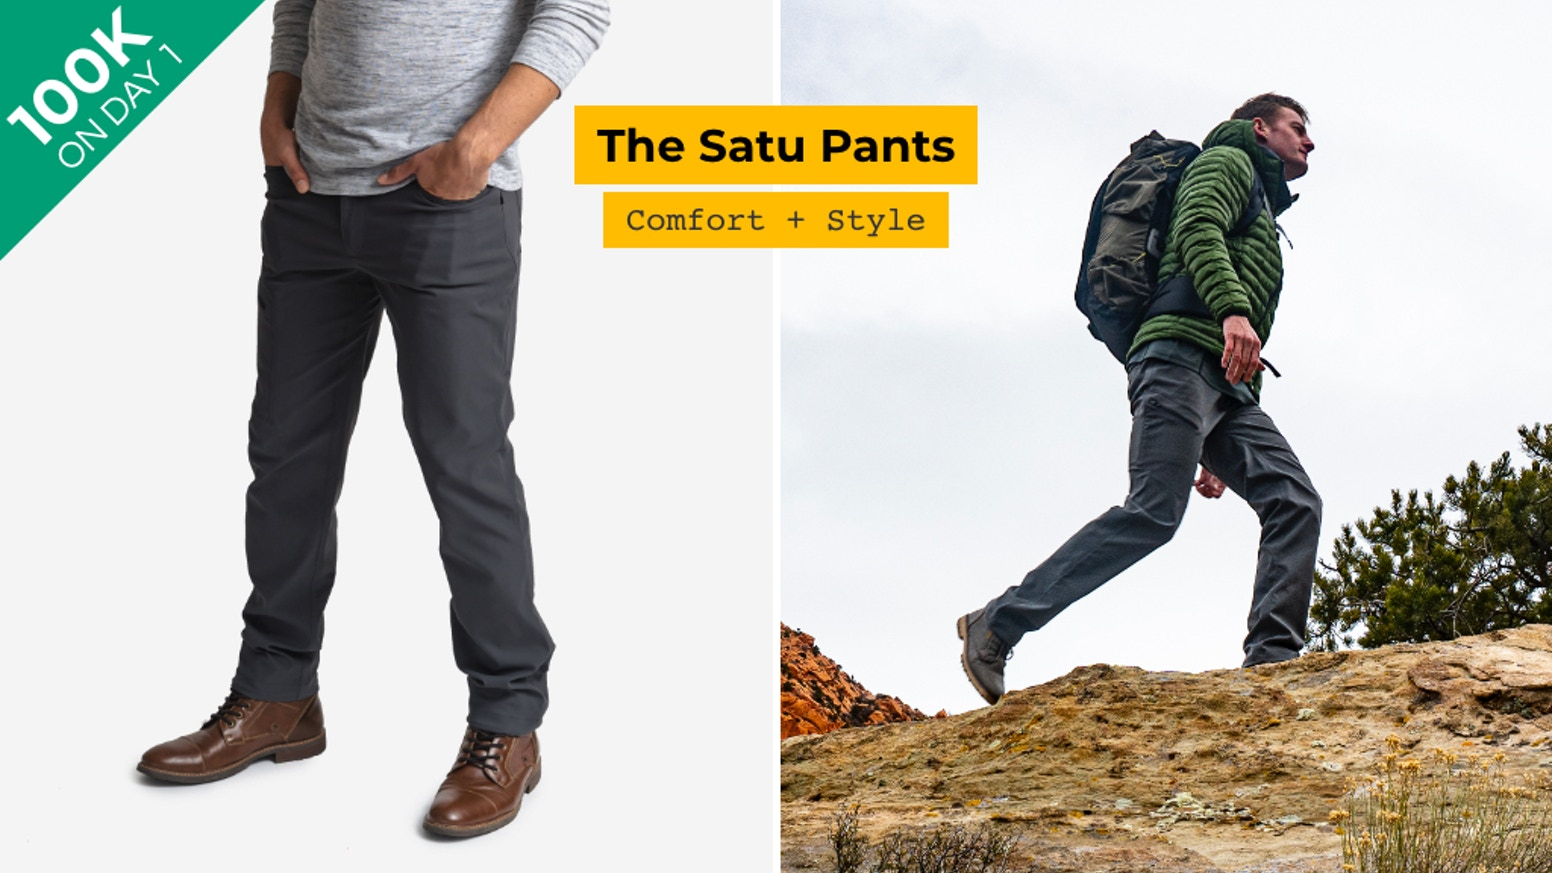 Built to stand the mountains, look good in the city, and keep you ultra-comfortable through it all.